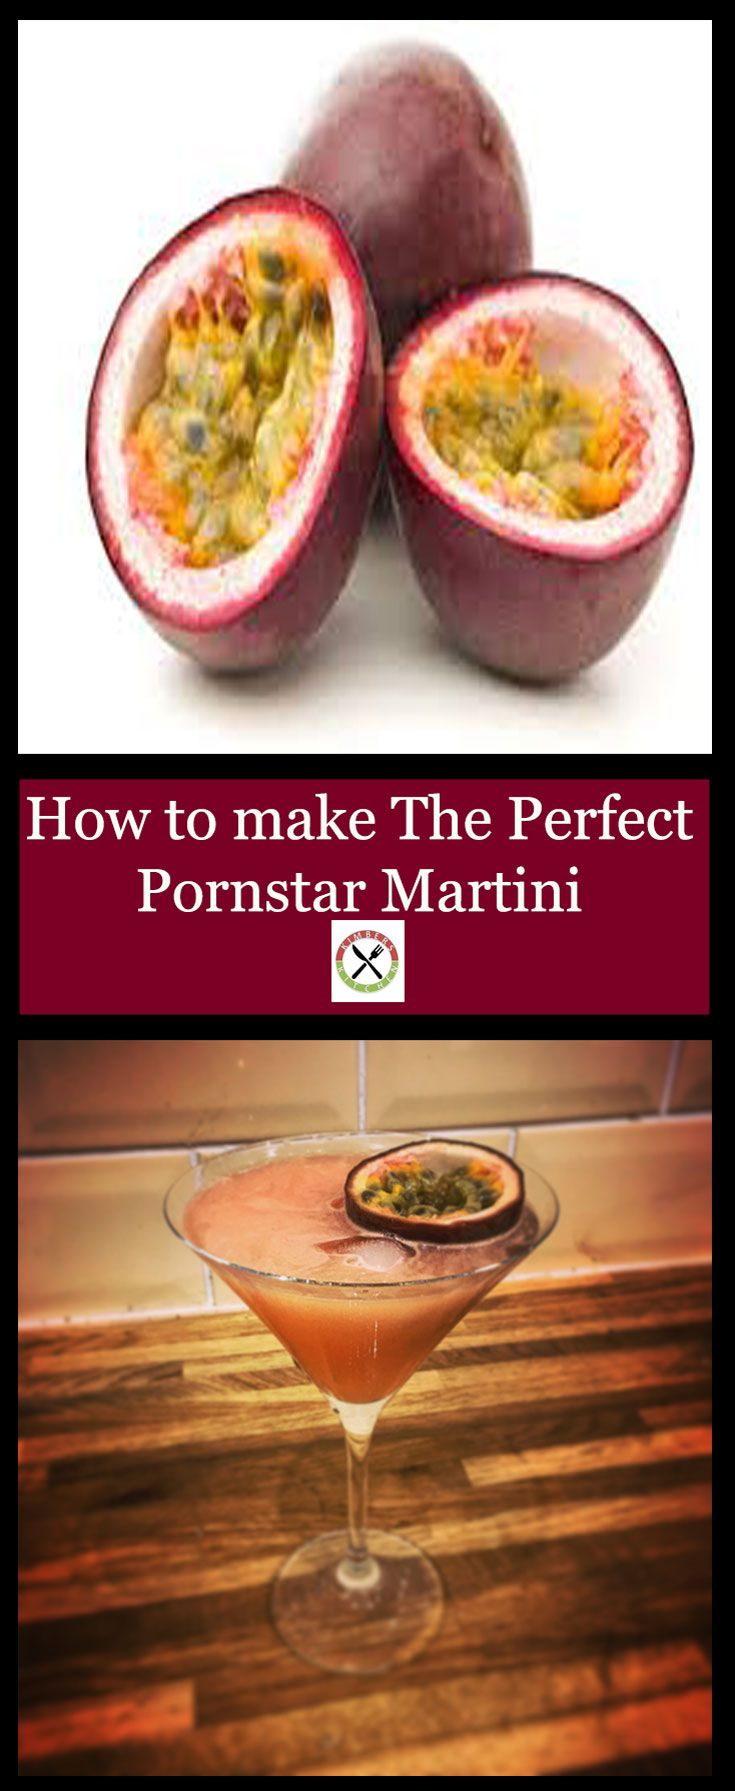 A recipe and guide to make the perfect Pornstar Martini using Vanilla syrup , lime, Vodka and fresh Passion fruit